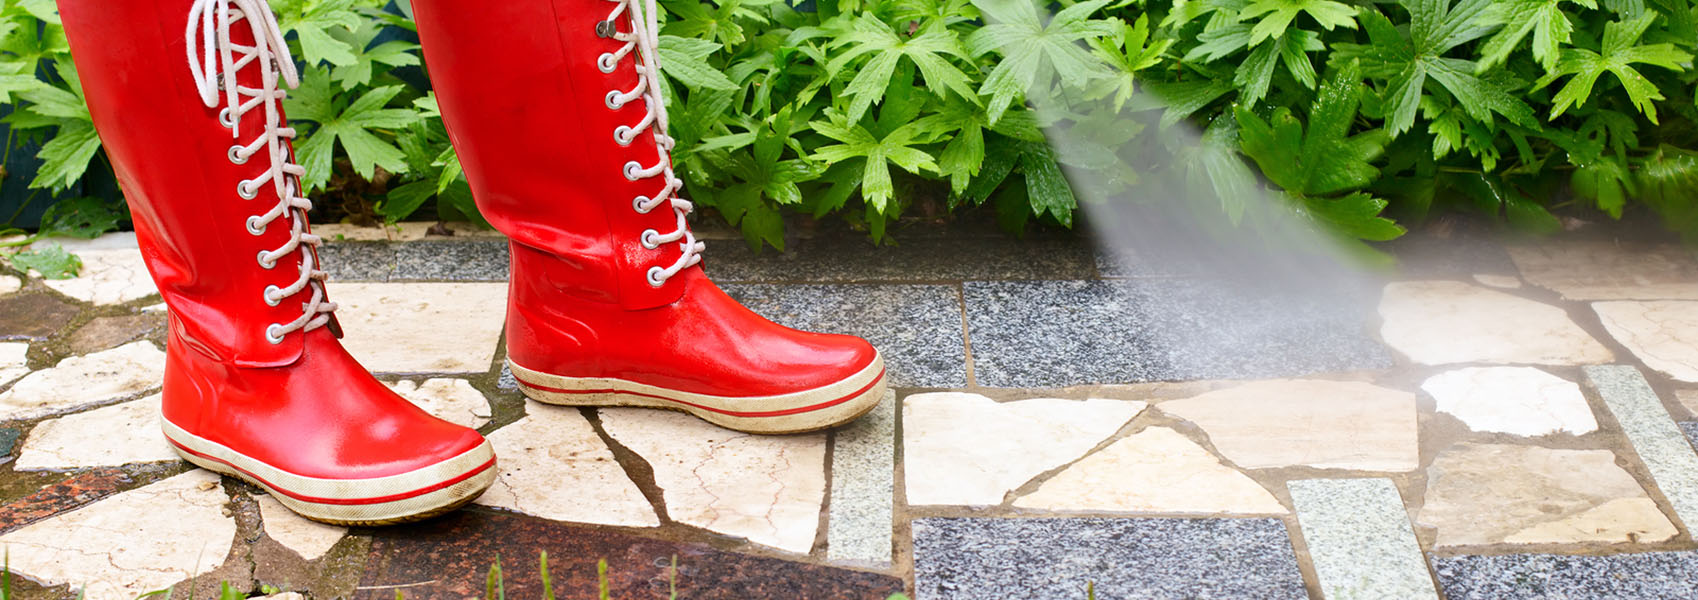 Power washing services to clean siding, decks, roofs, sidewalks, driveways.